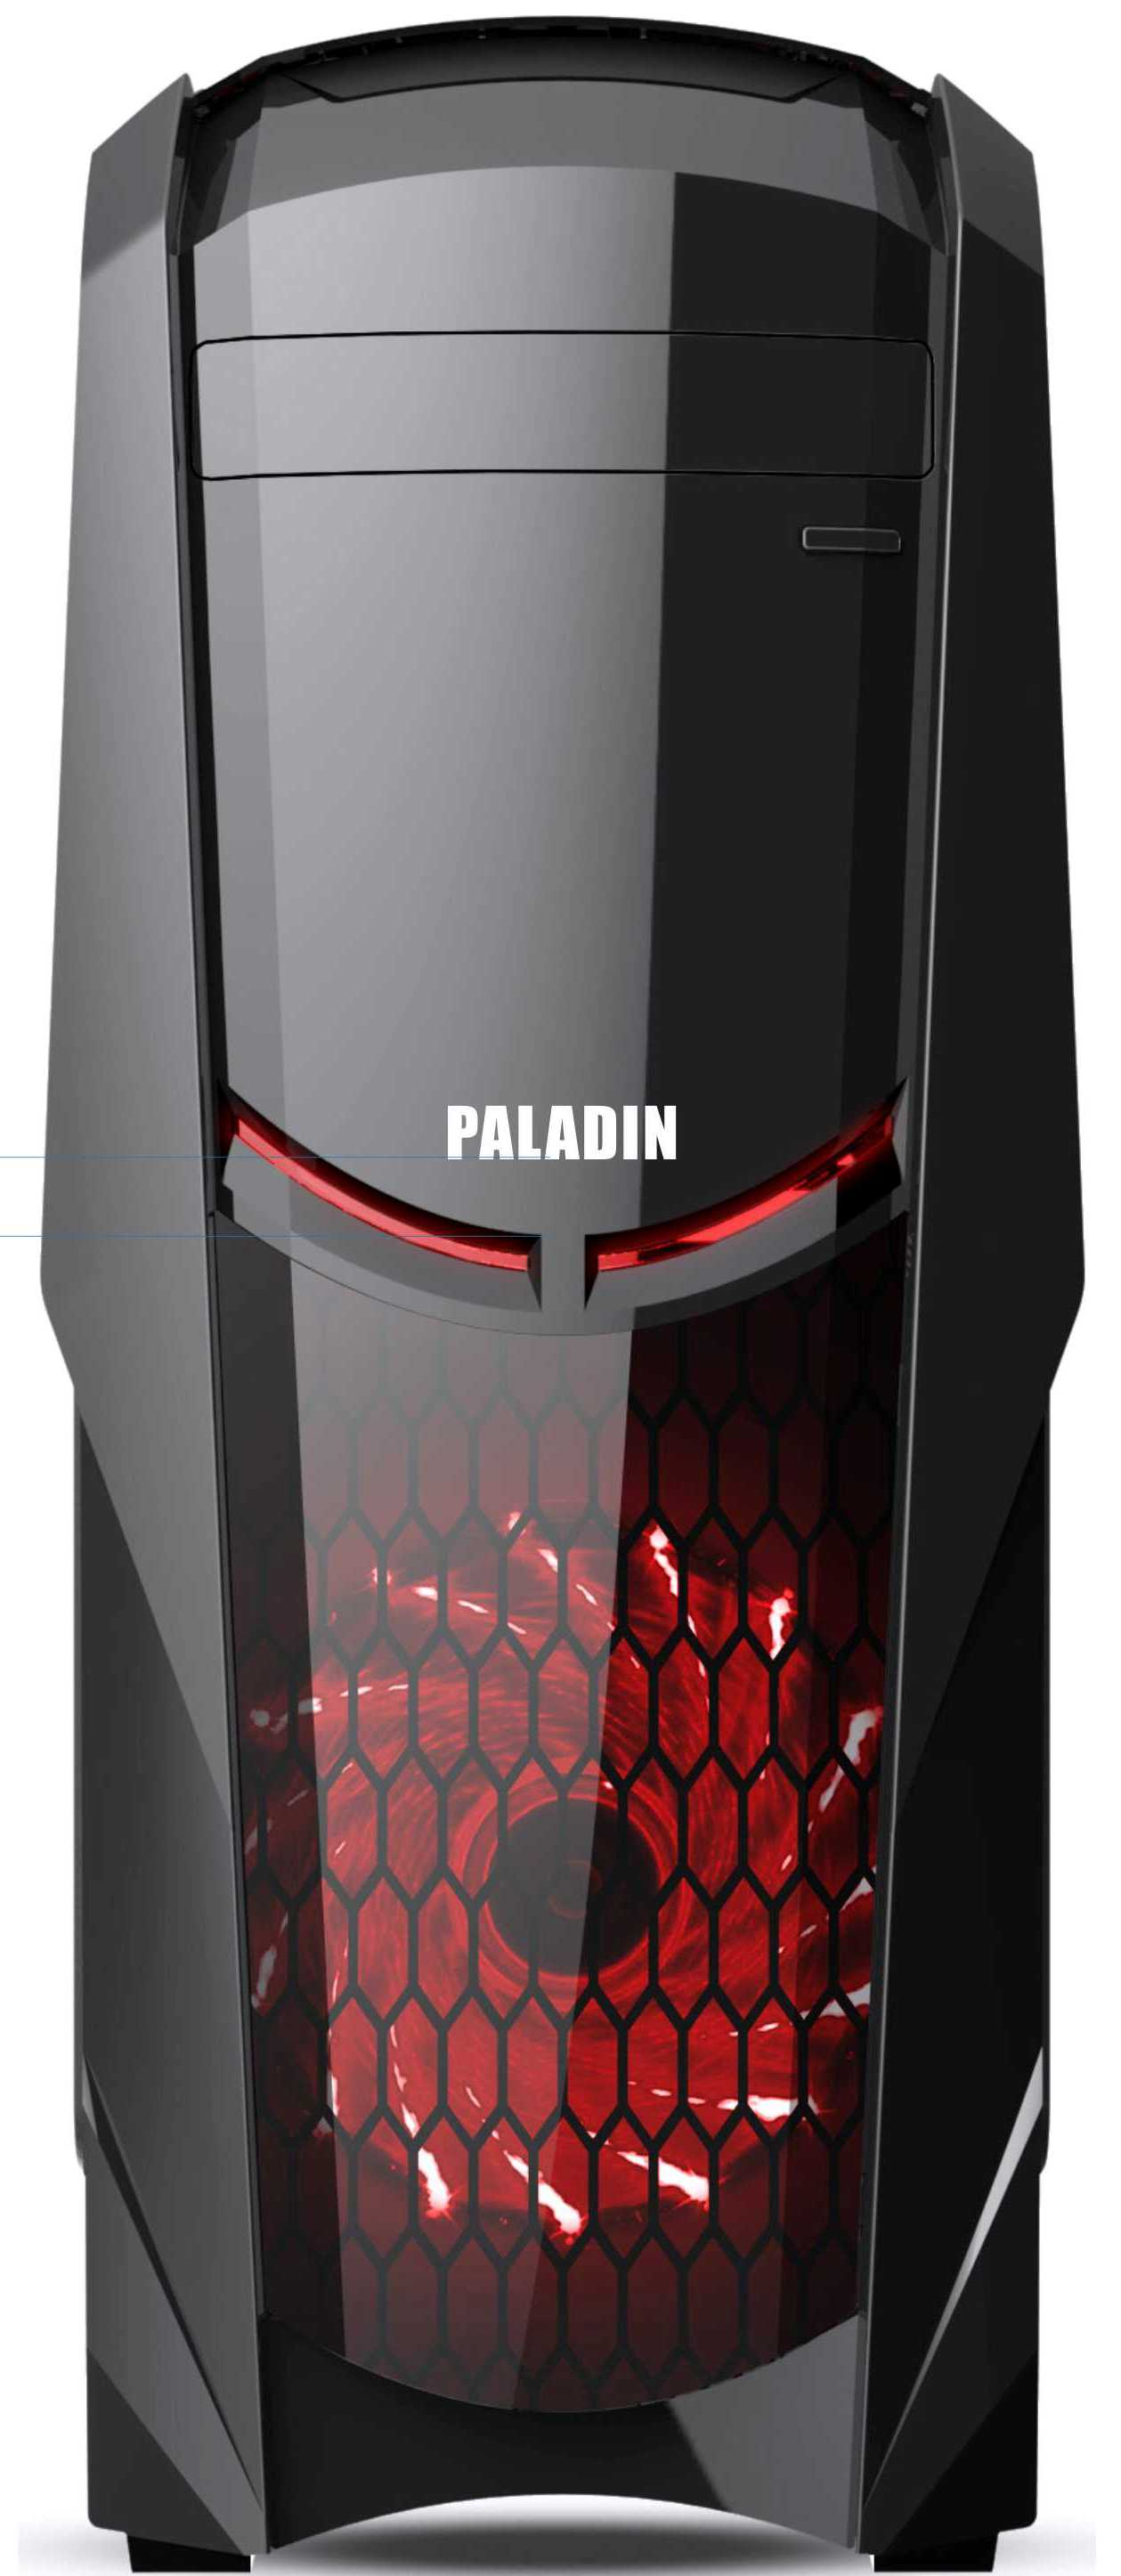 Компьютер Game PC 710R (2018) Системный блок Black / i3-7100 3.9GHz / 8GB / 1TB / дискретная GTX 1050 Ti 4GB/ DVD нет / NoOS компьютер game pc 710 intel core i3 7100 8gb 1tb 2gb gtx1050 win10h sl 64 bit